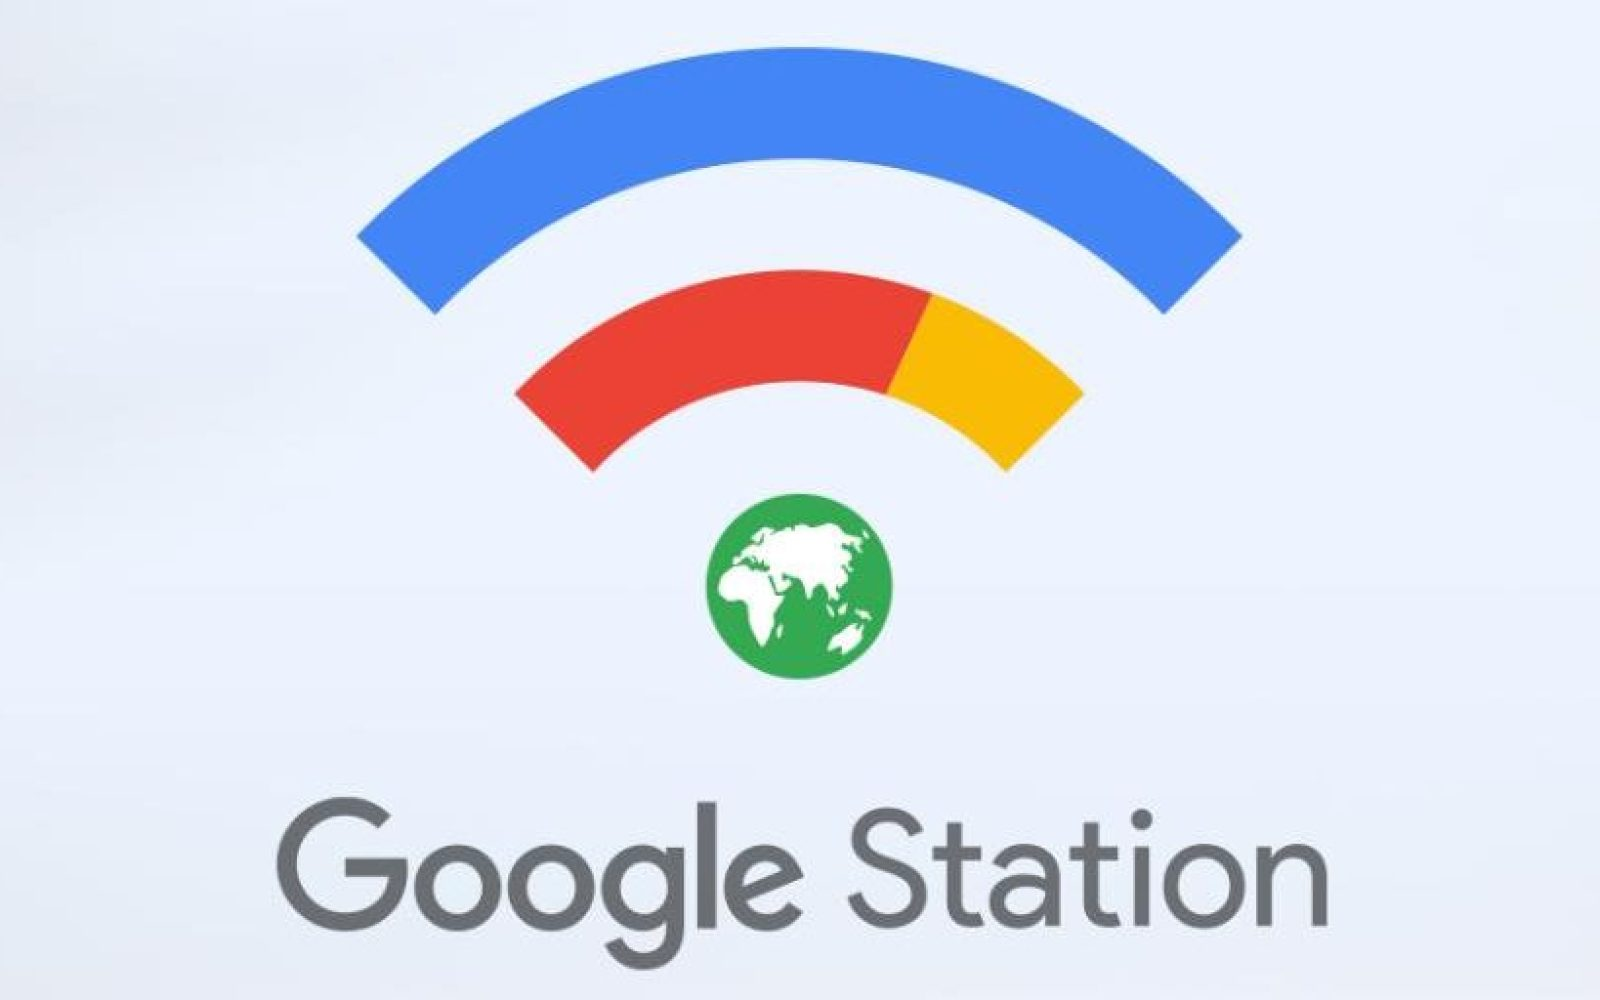 Google Station will bring fast and safe Wi-Fi to locations around the world